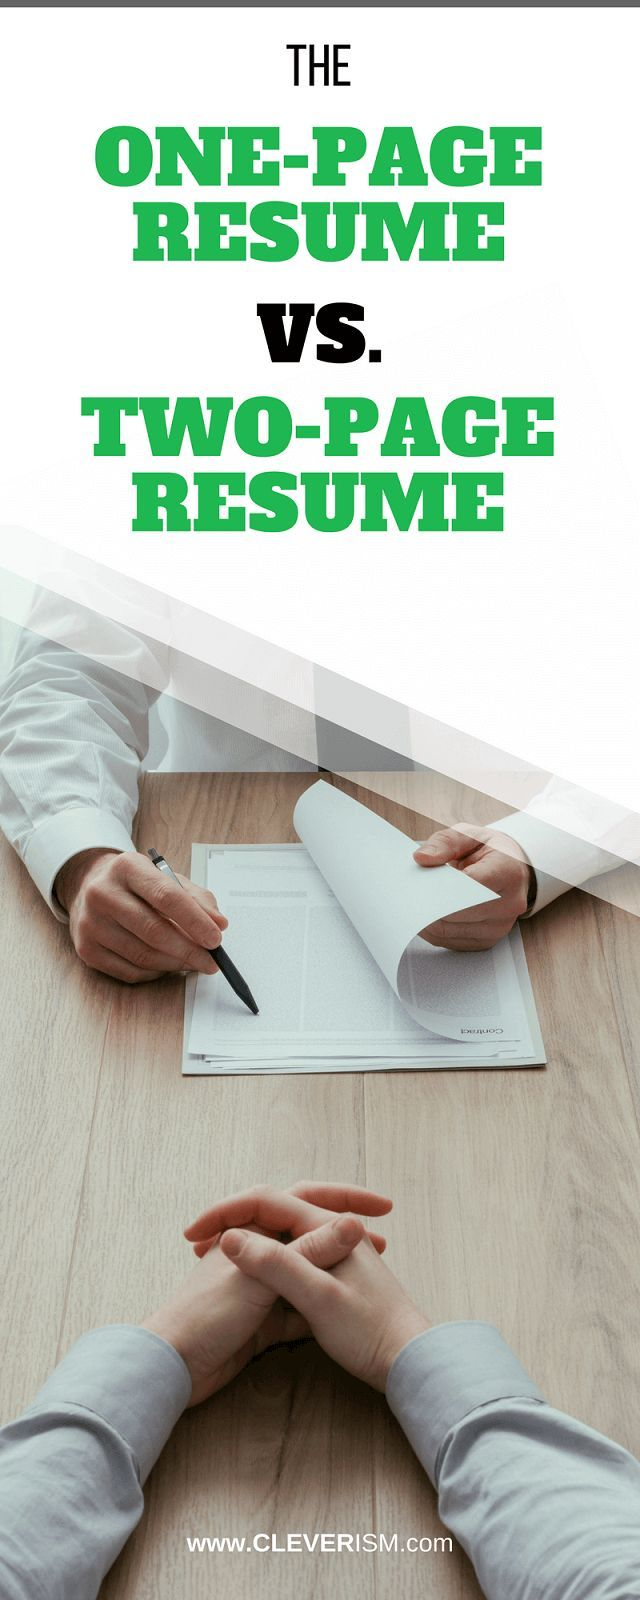 The One Page Resume vs the Two Page Resume